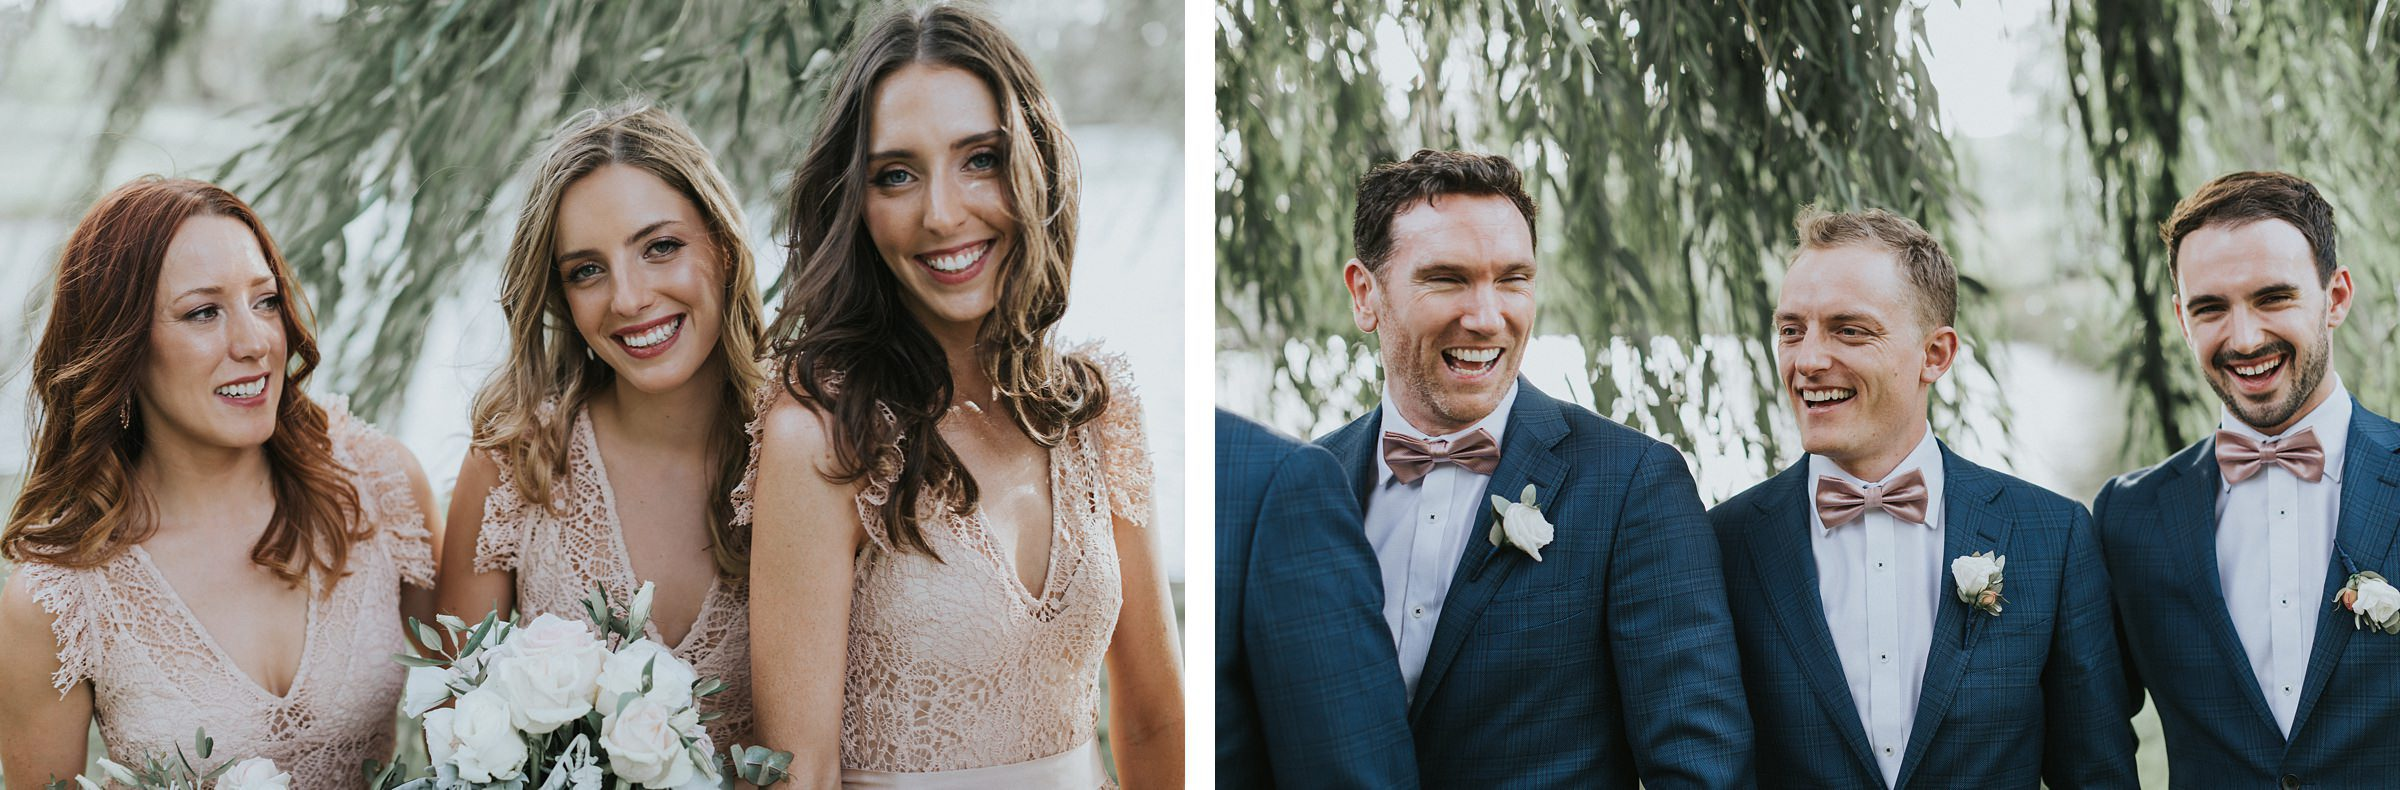 laughter from the bridal party during wedding portraits